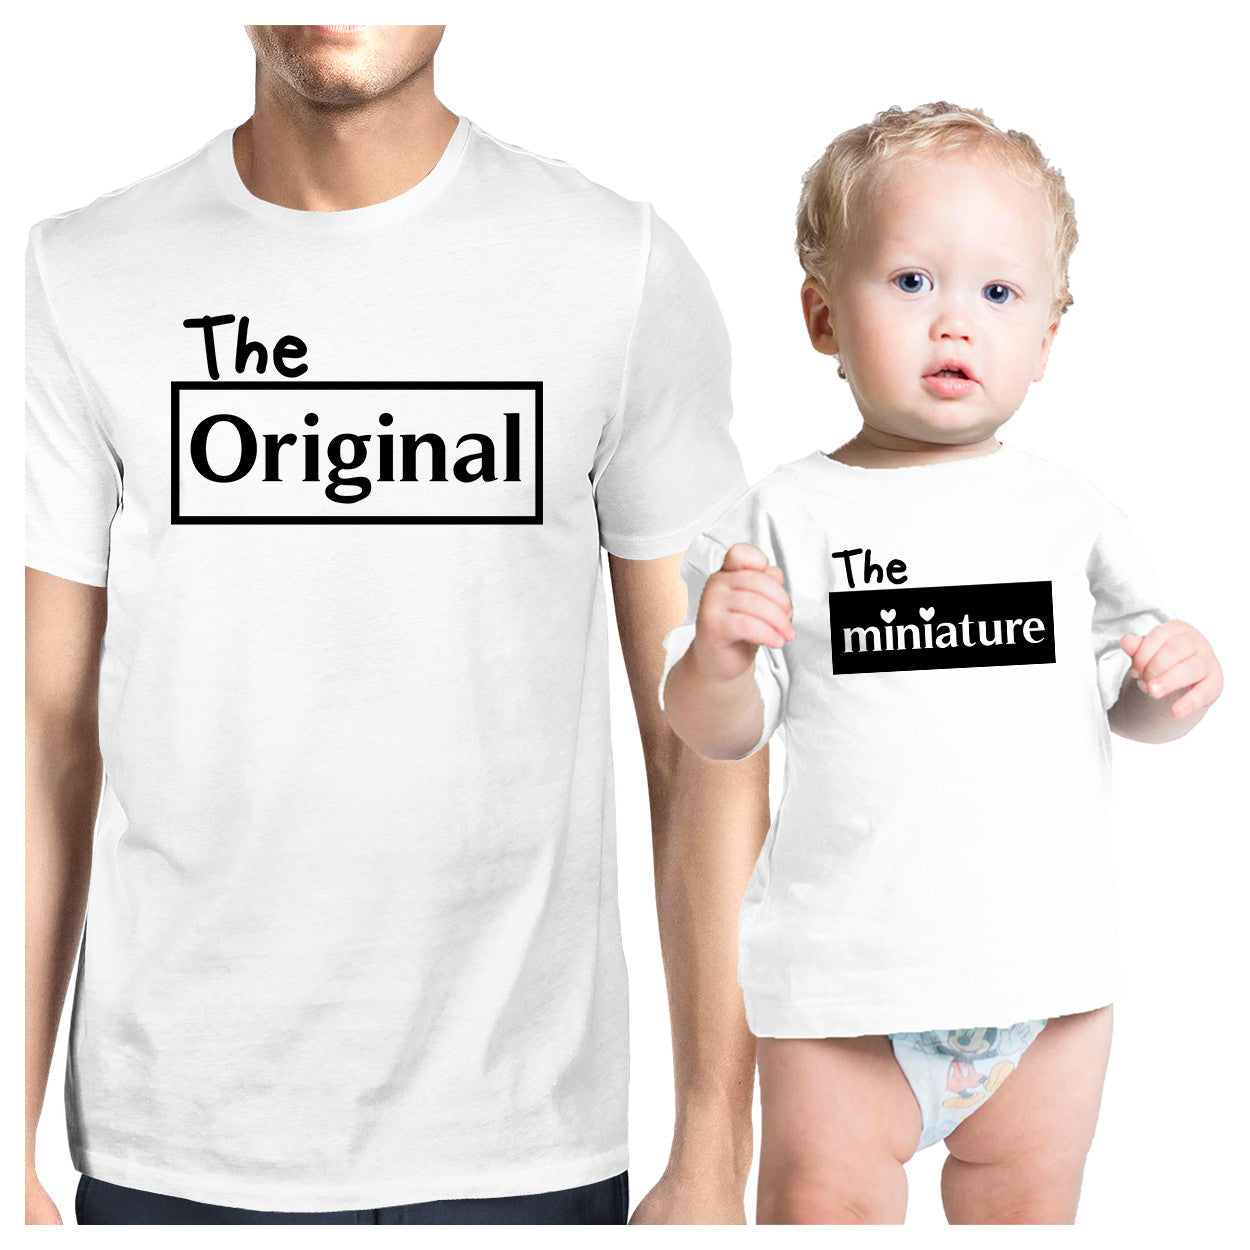 651ec9c6 Original And Mini White Dad Baby Boy Shirts Funny Fathers Day Gifts ...